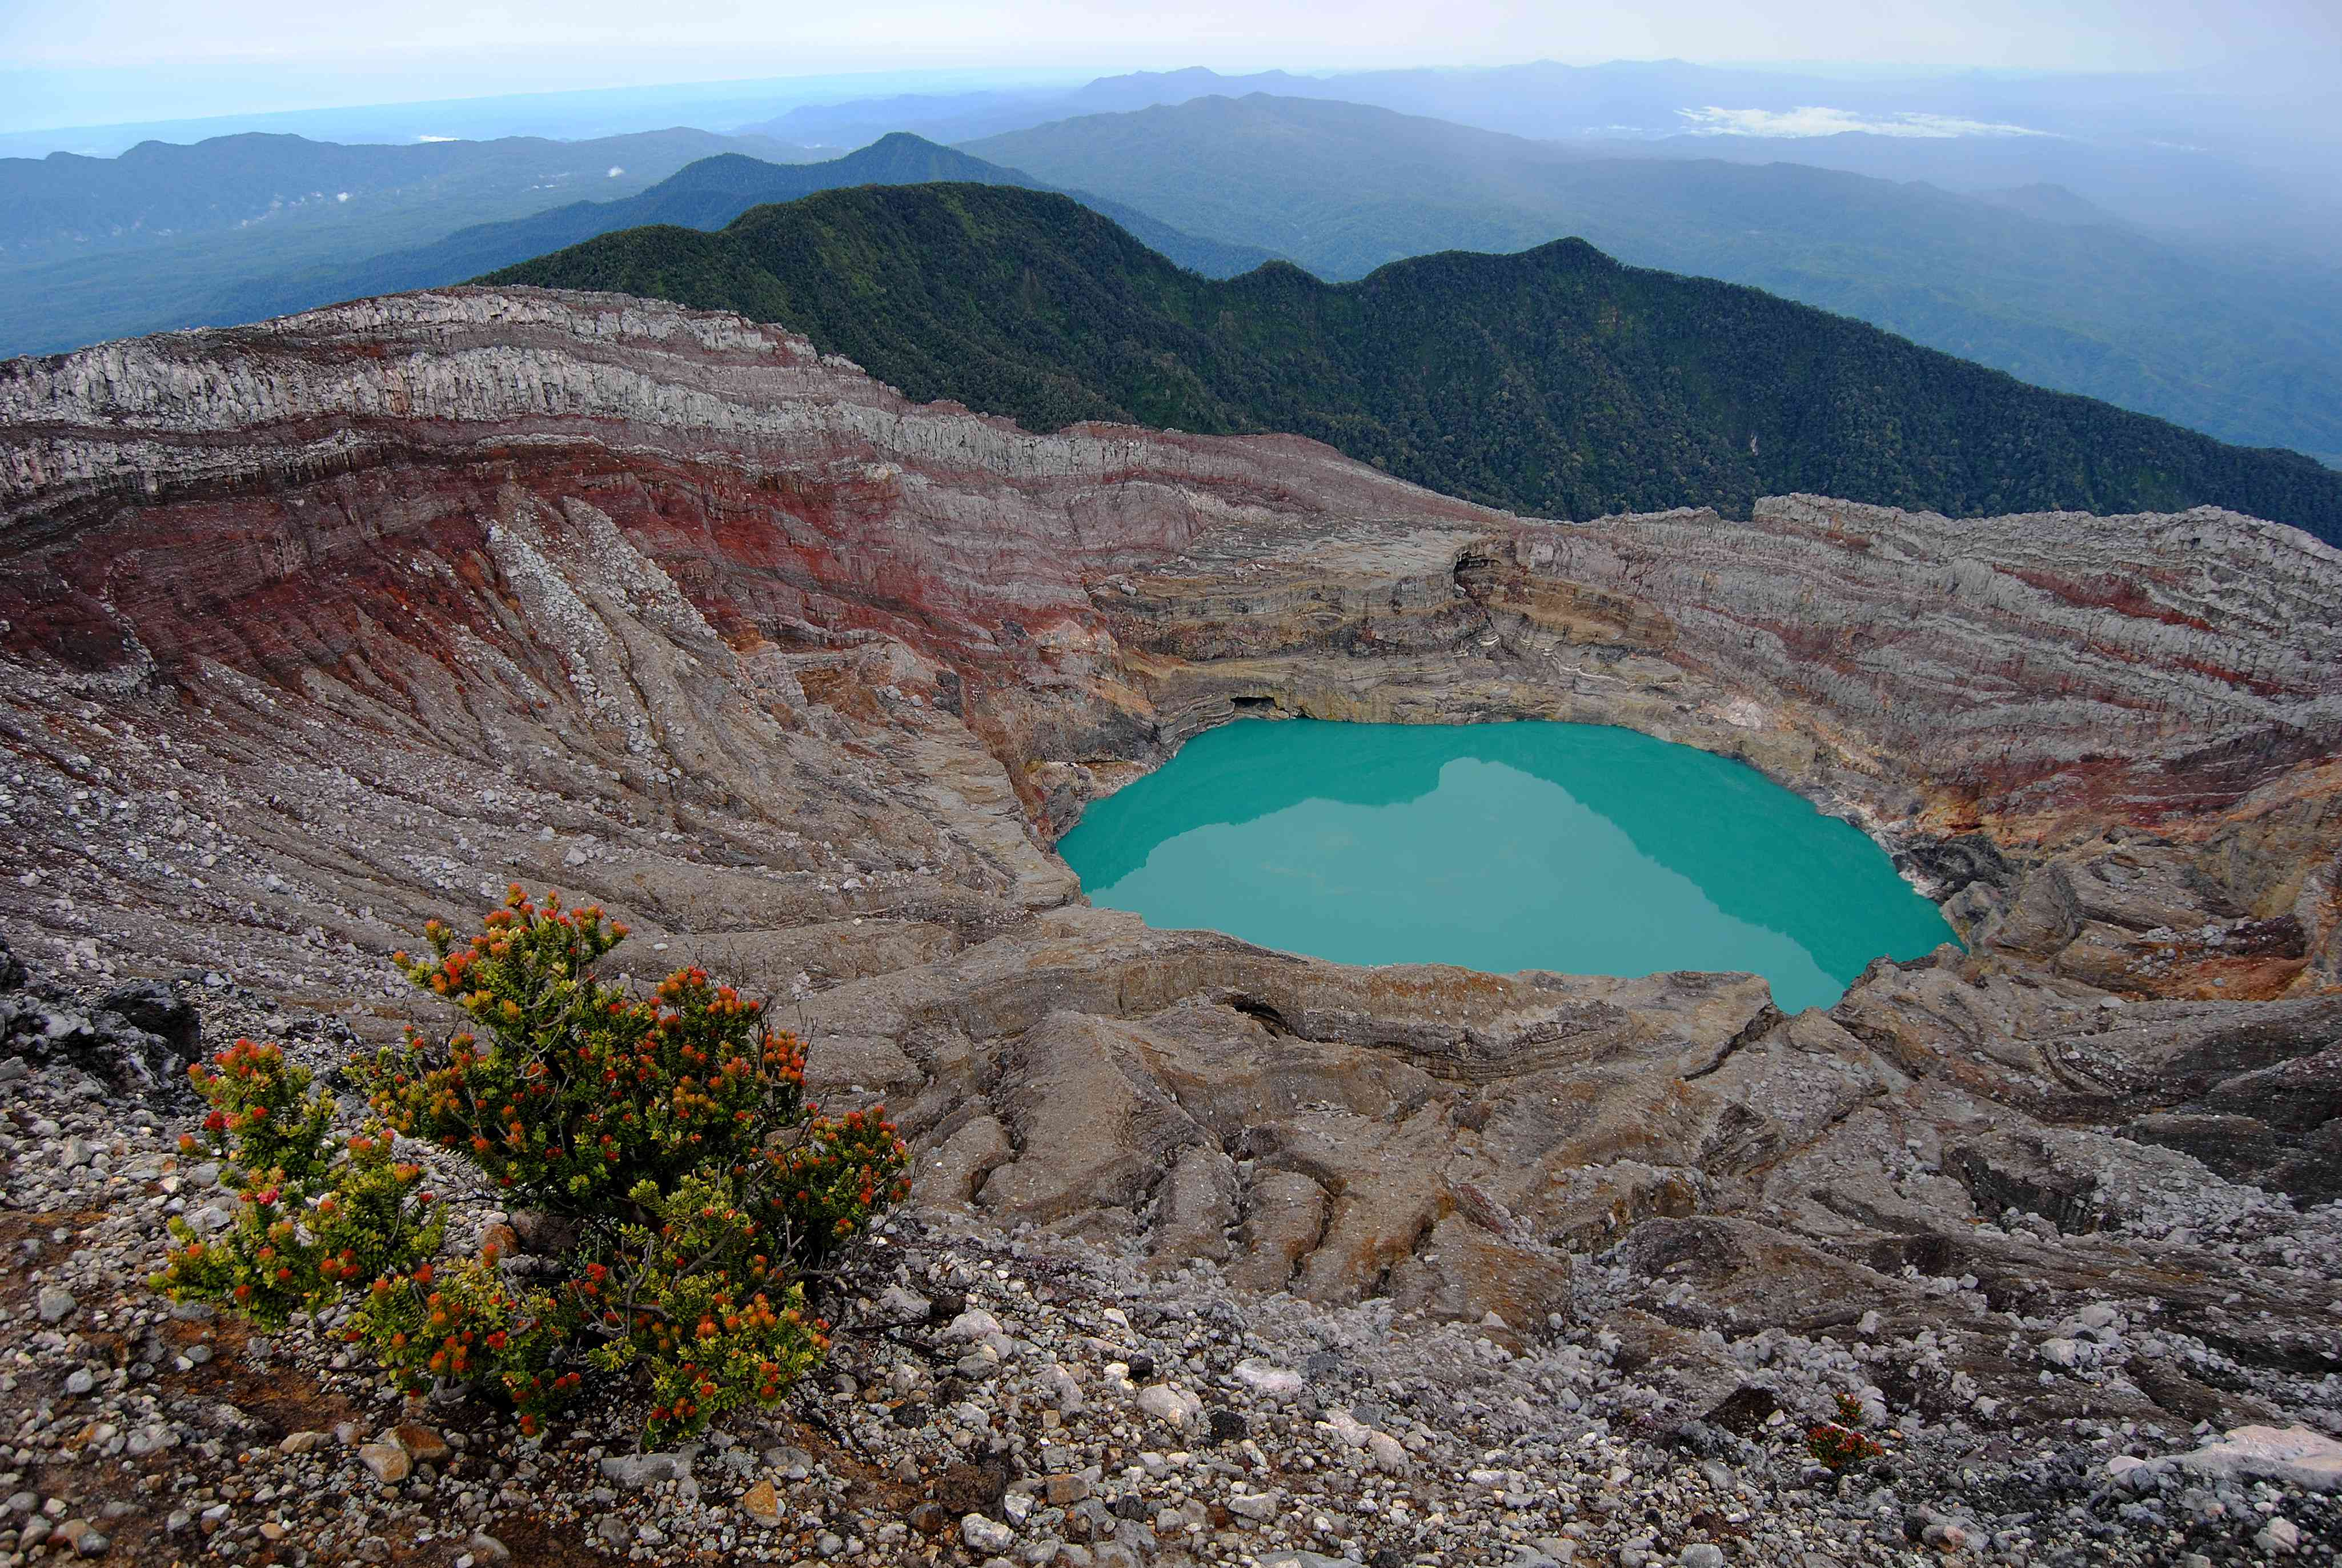 Blue water in a crater atop Mount Dempo in South Sumatra